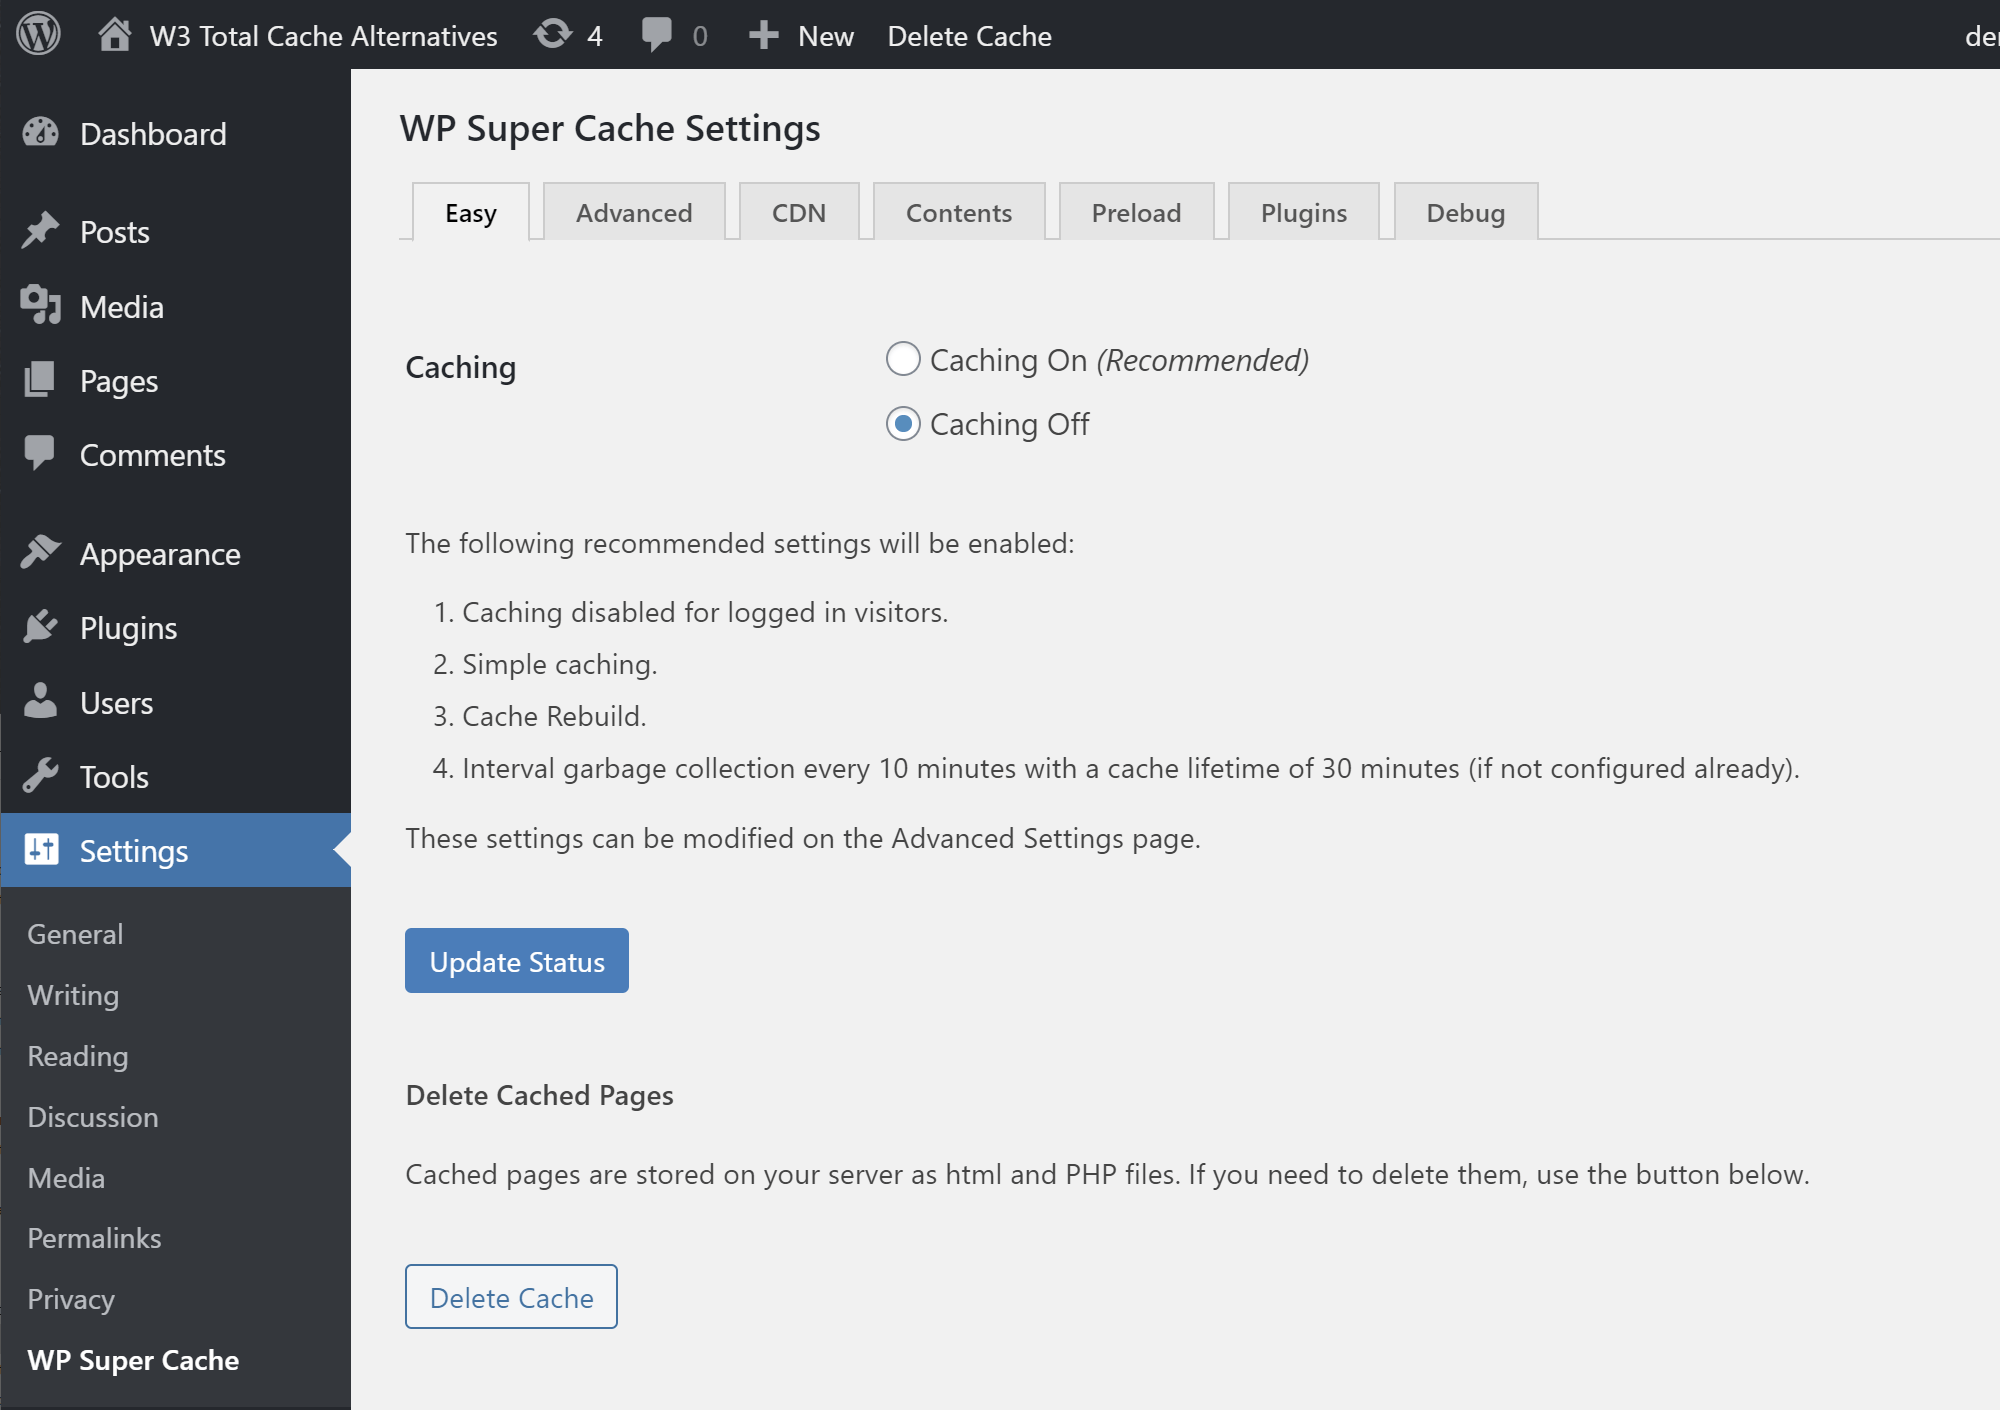 WP Super Cache basic settings